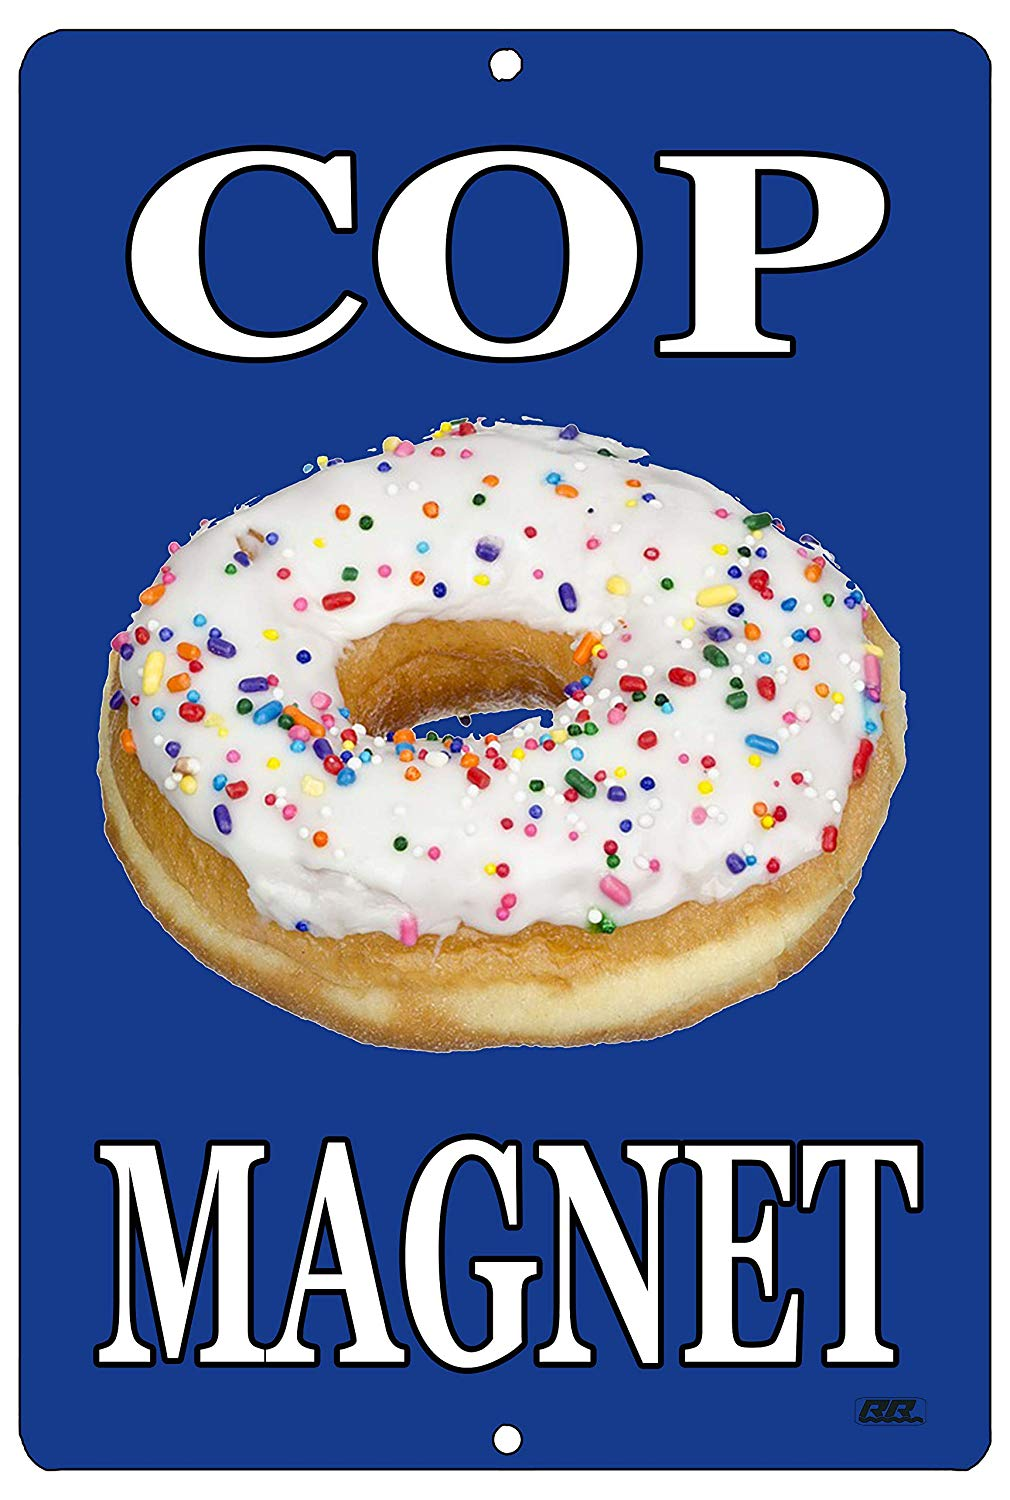 blue funny metal sign with a sprinkled donut that says